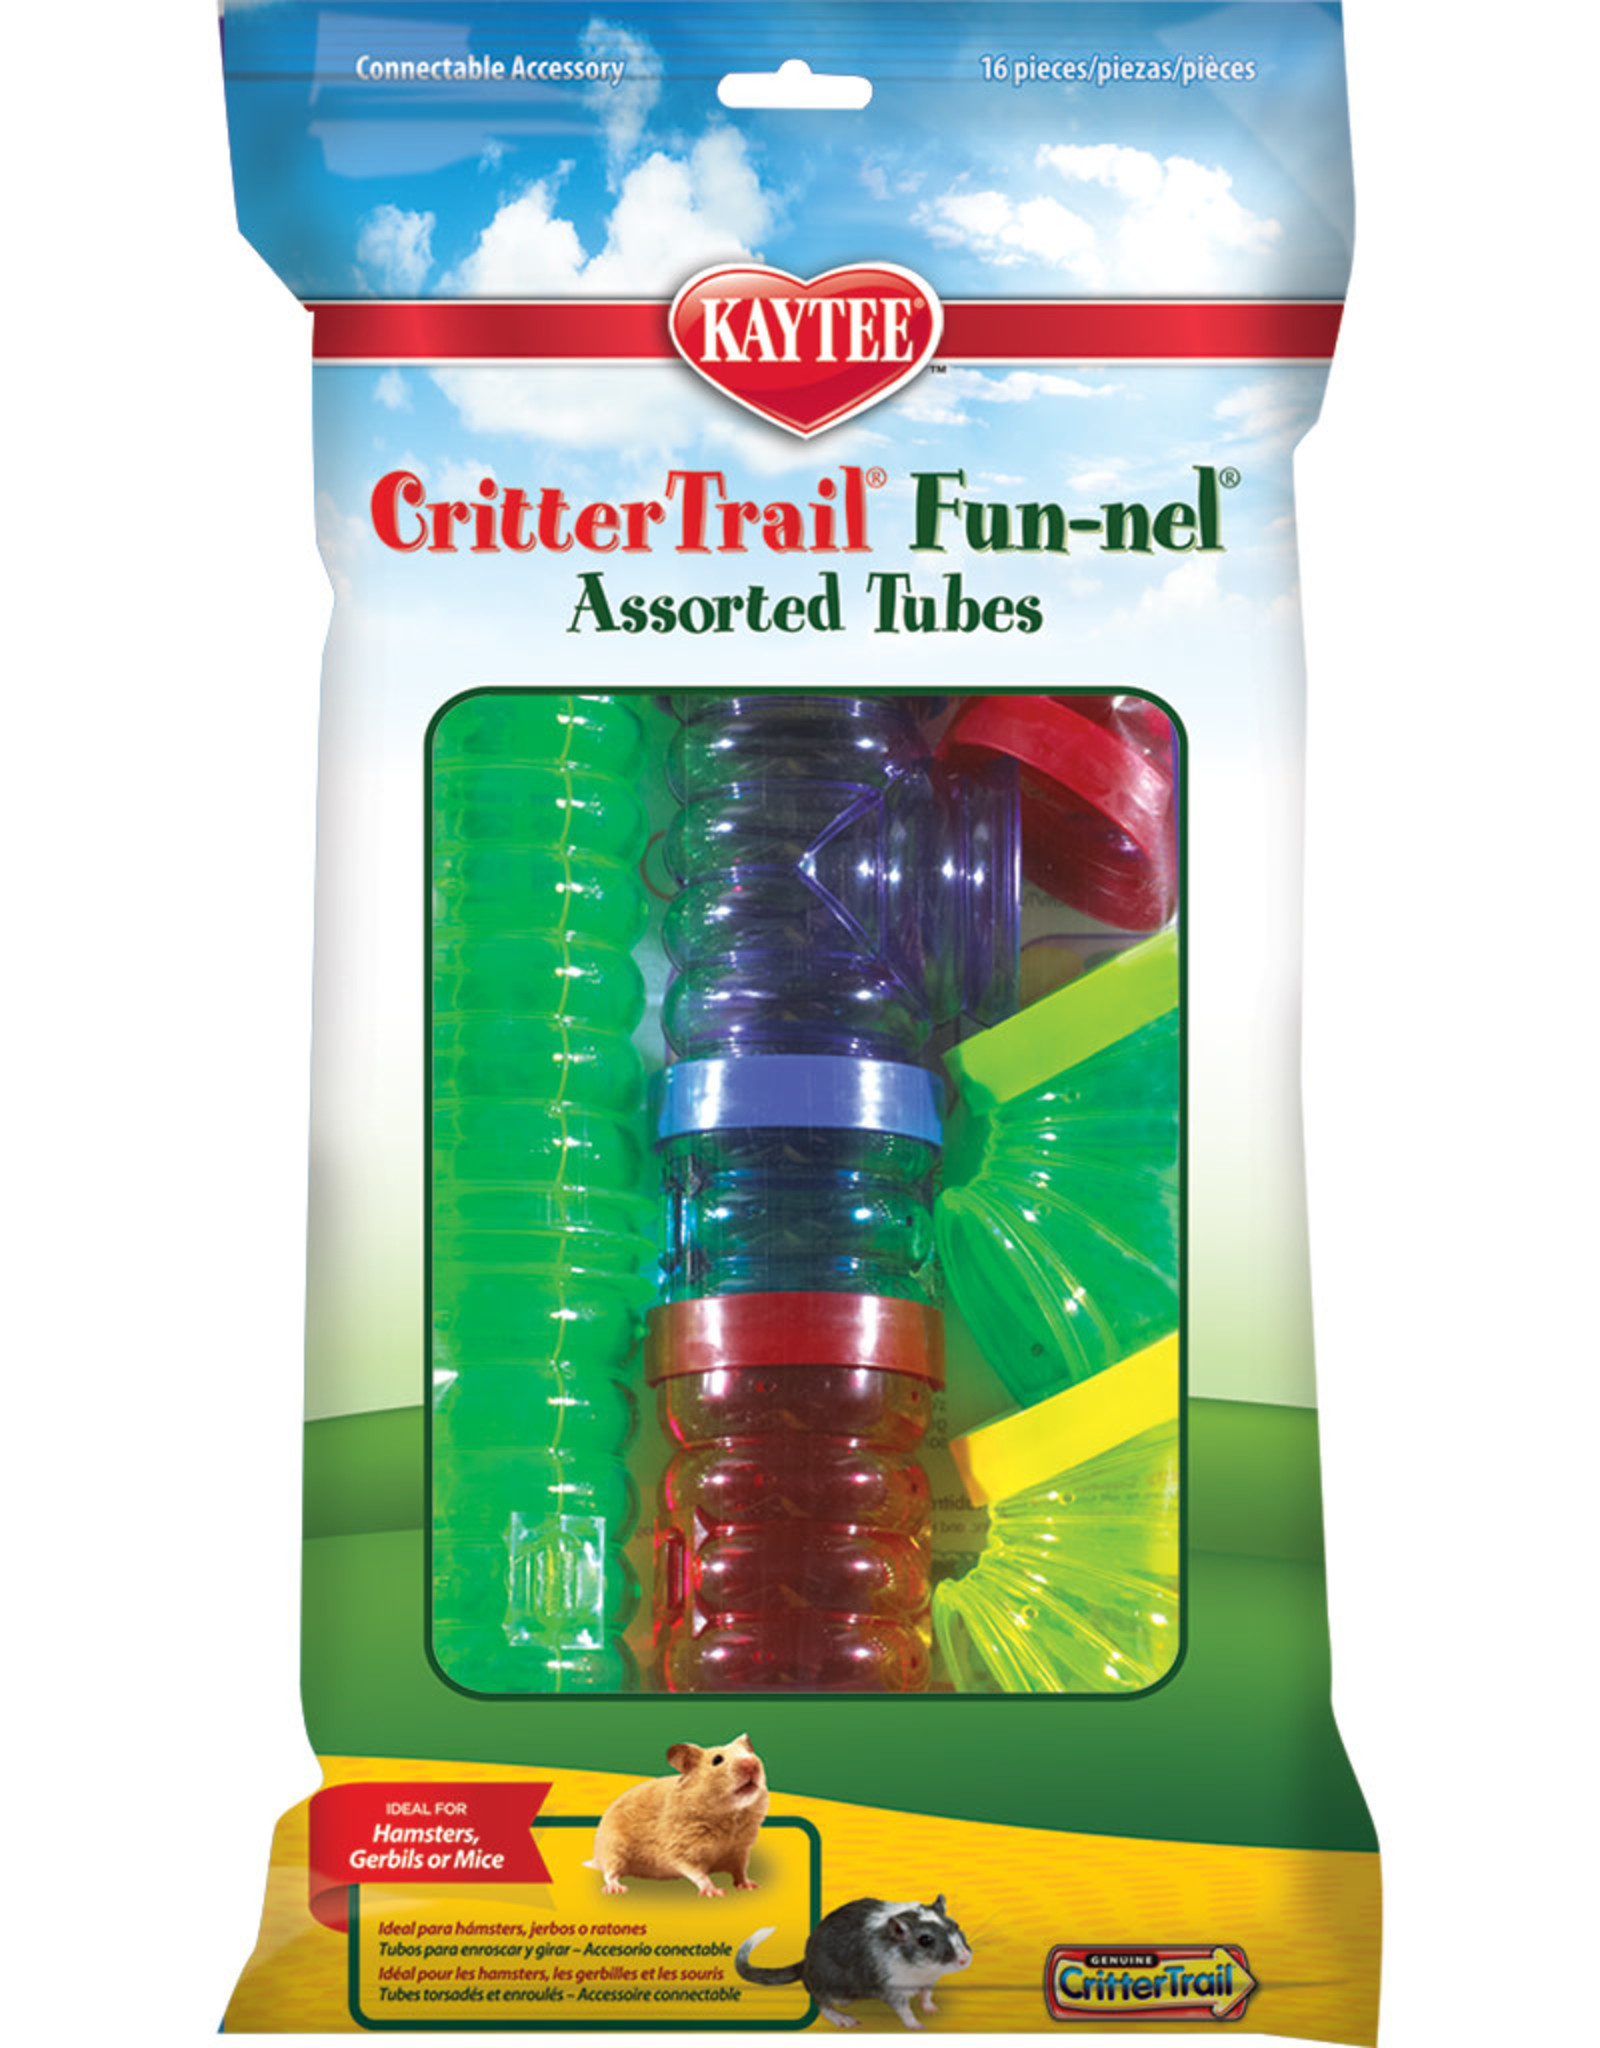 KAYTEE PRODUCTS INC CritterTrail Fun-nels Value Pack Large